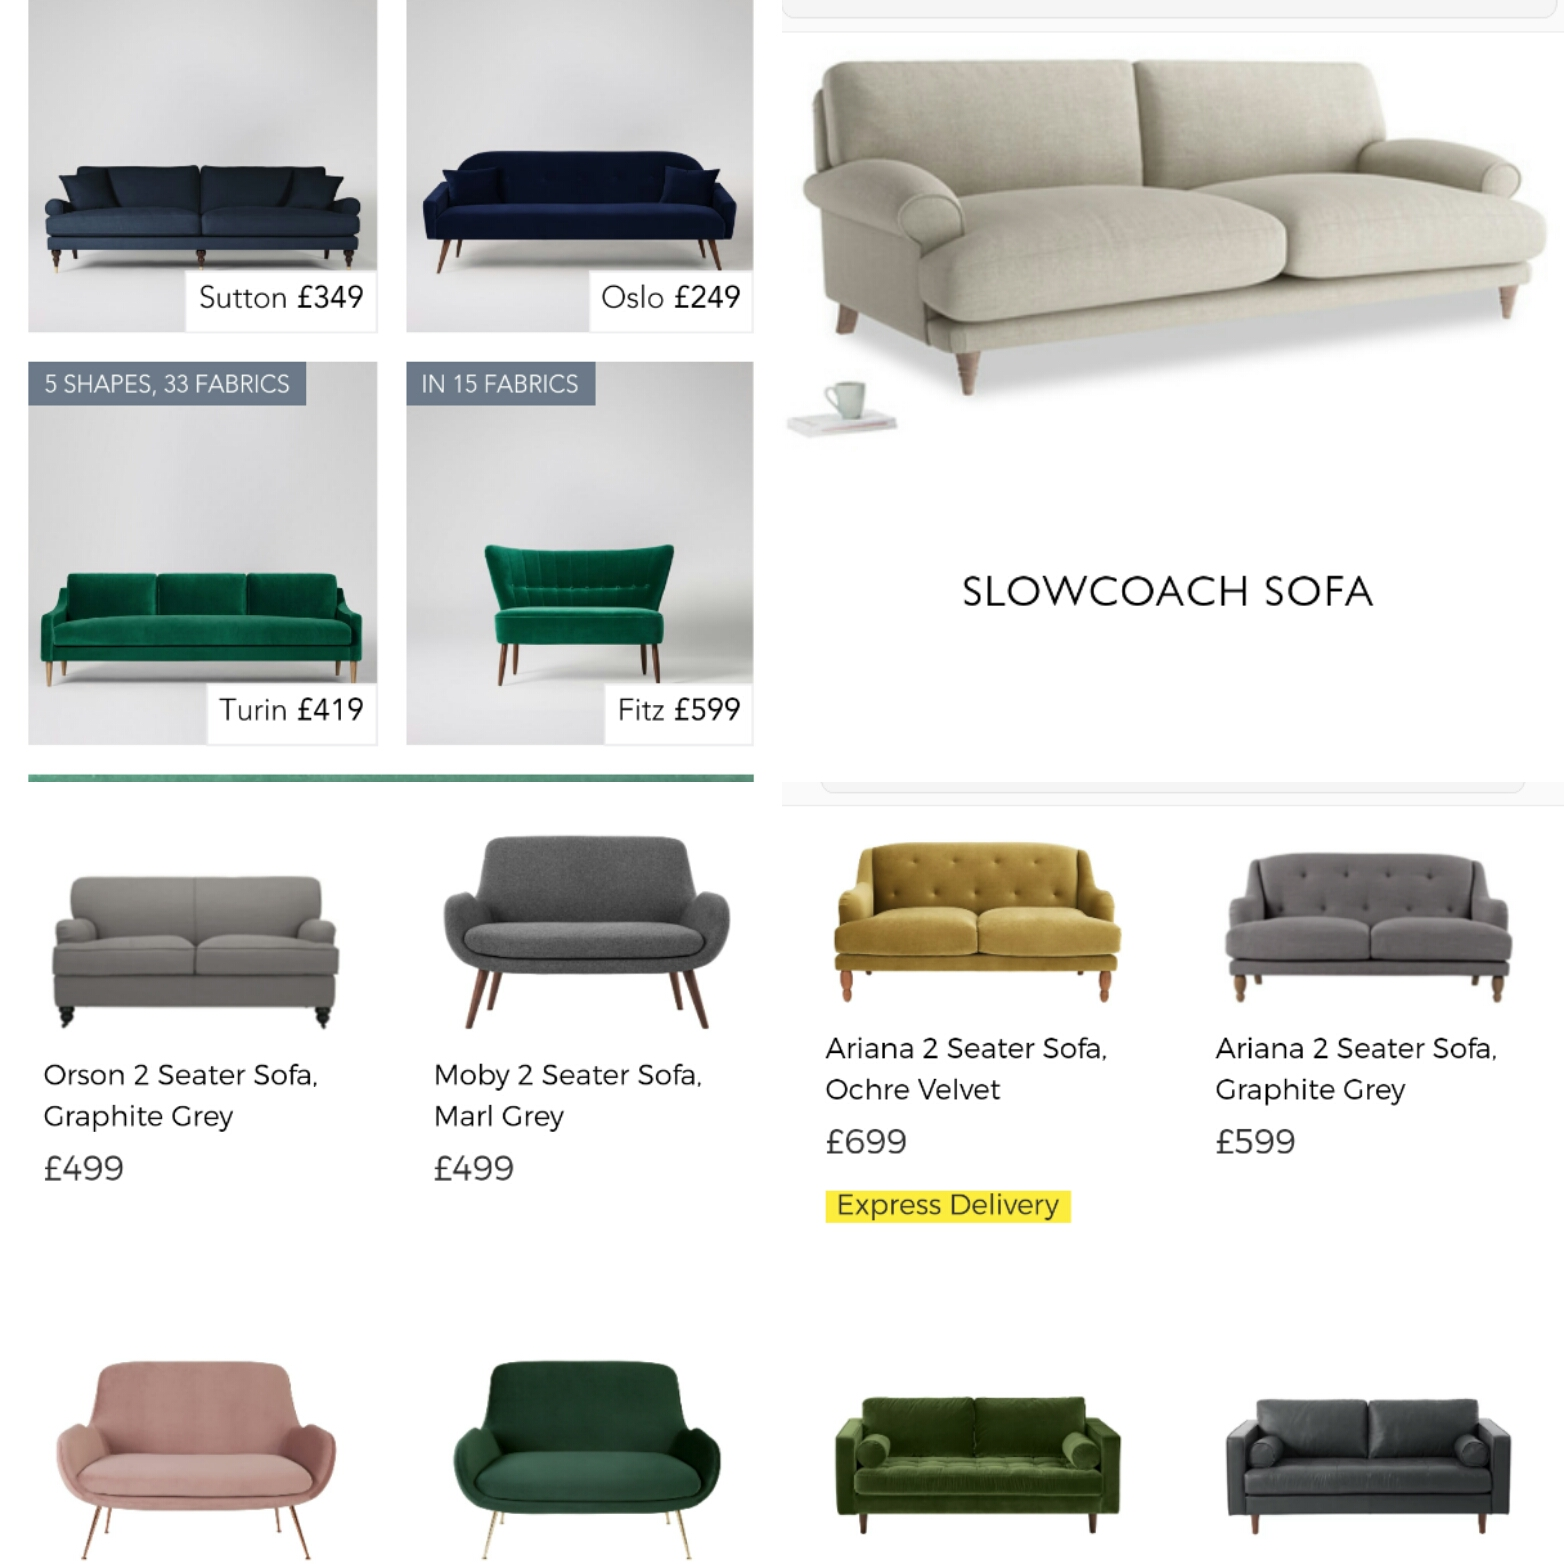 Sofa Bed Express Delivery Sofa So Good Dorset Dawdlers